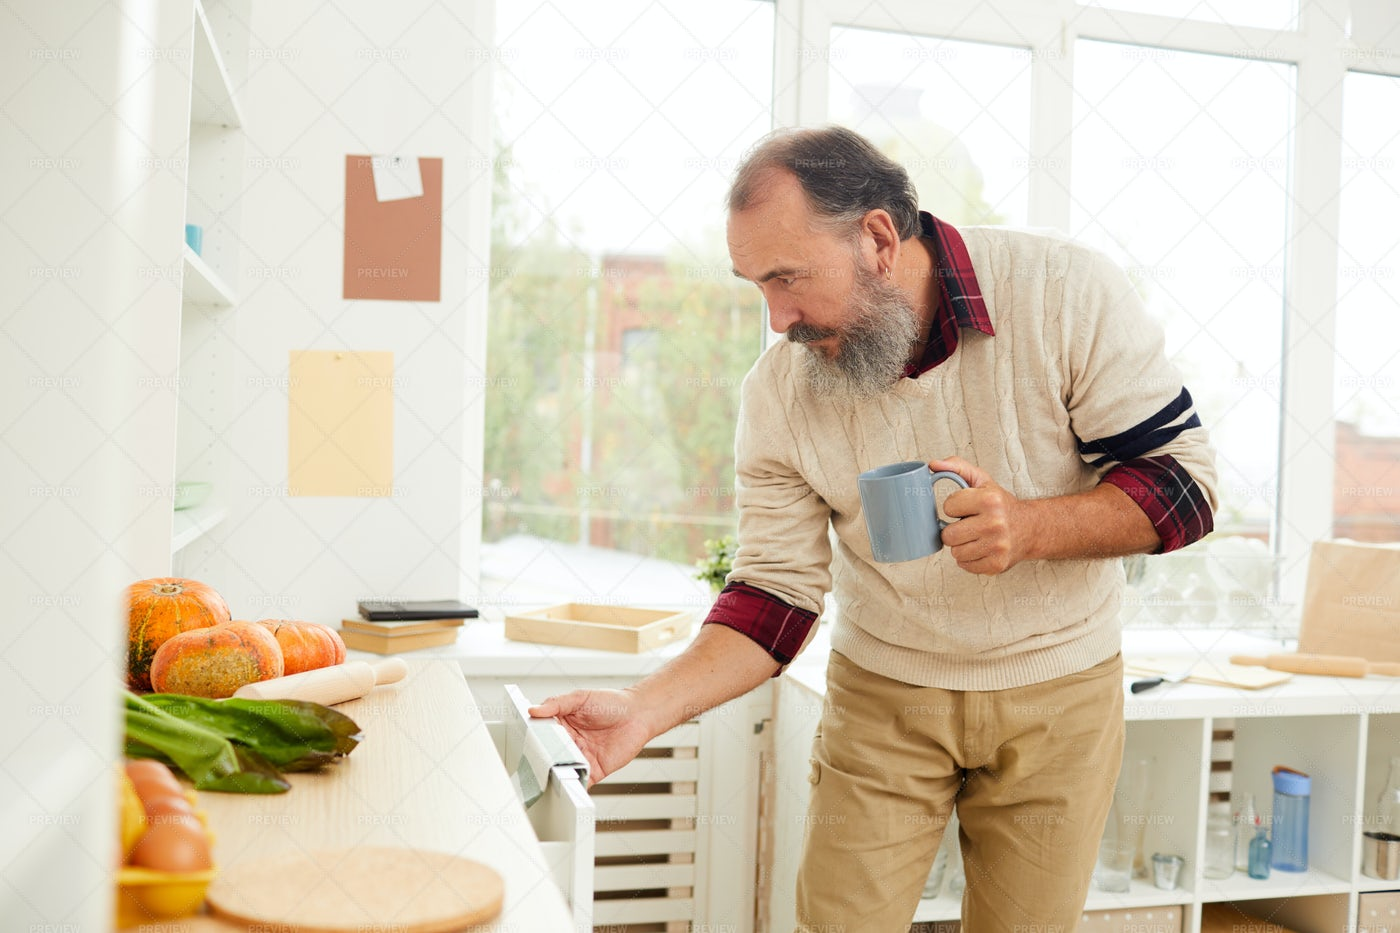 Senior Man Looking For Food In...: Stock Photos